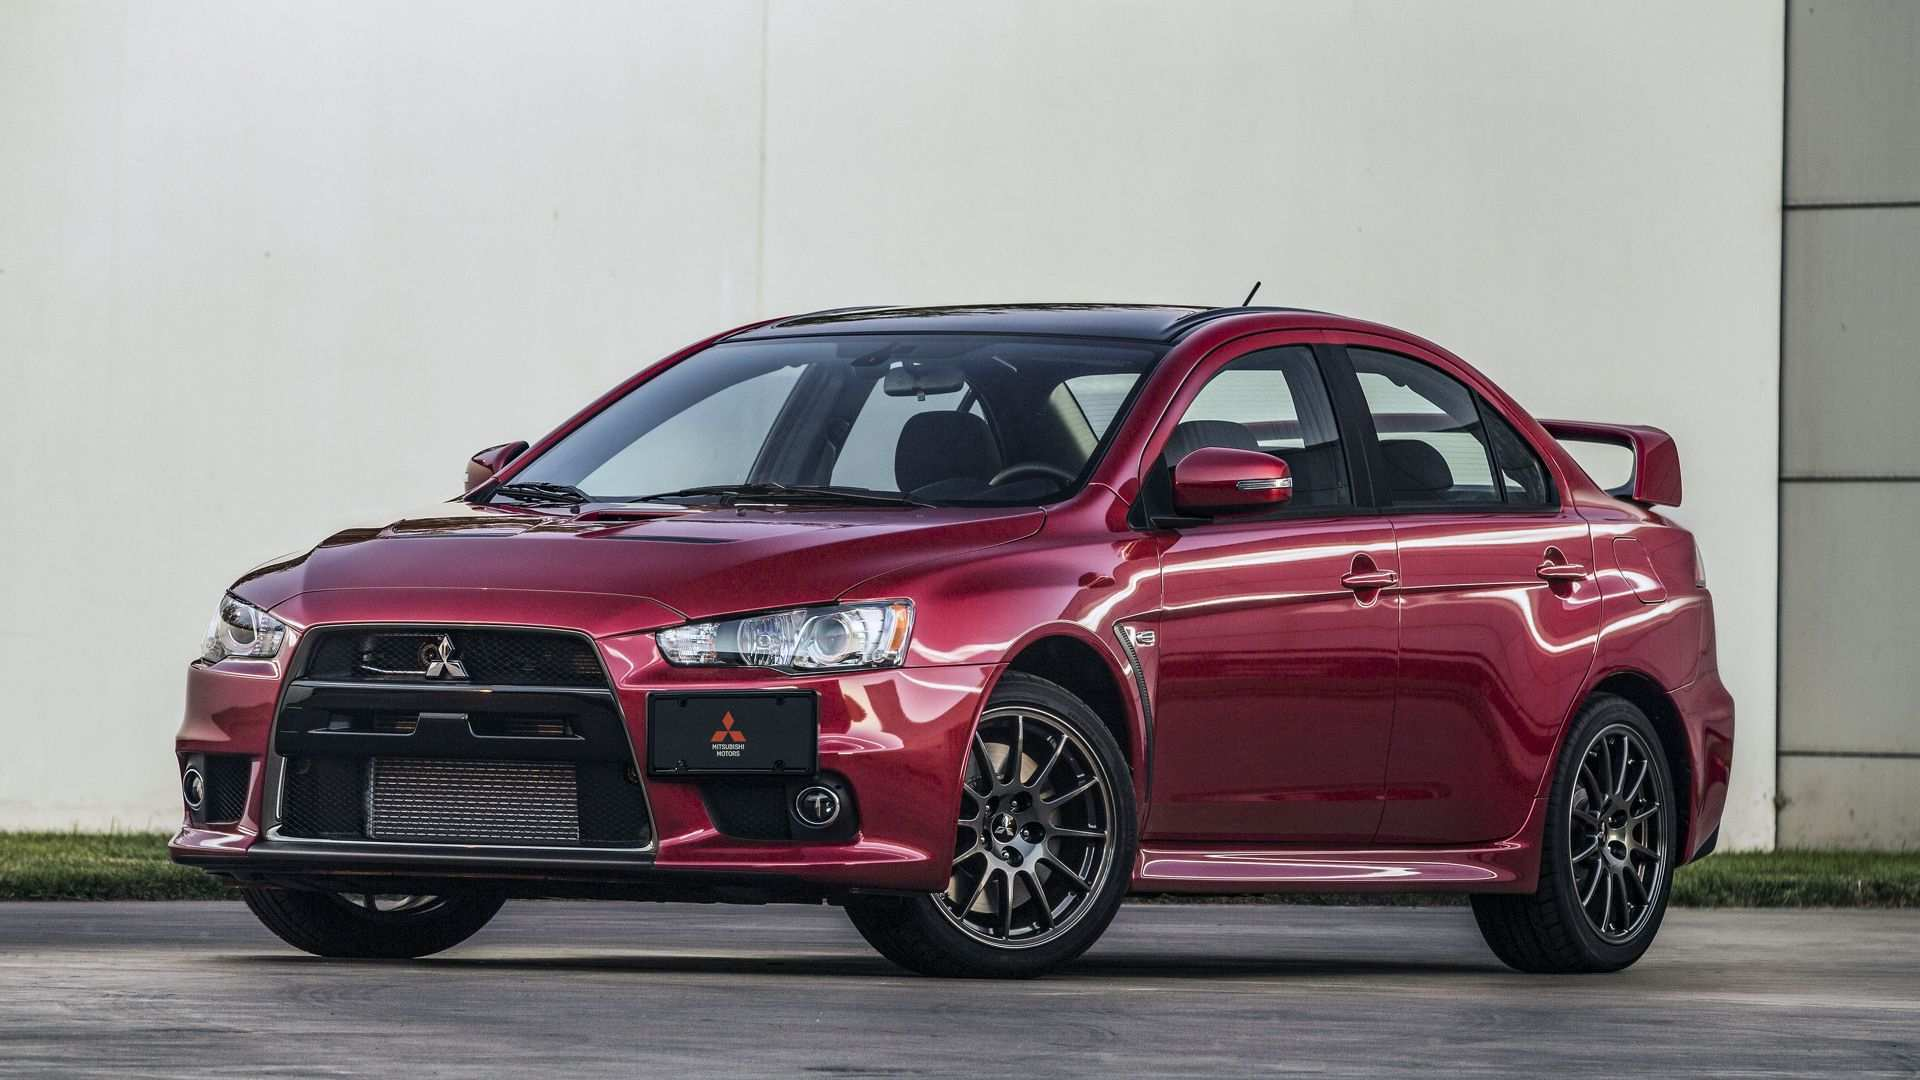 68 The 2020 Mitsubishi Lancer Overview